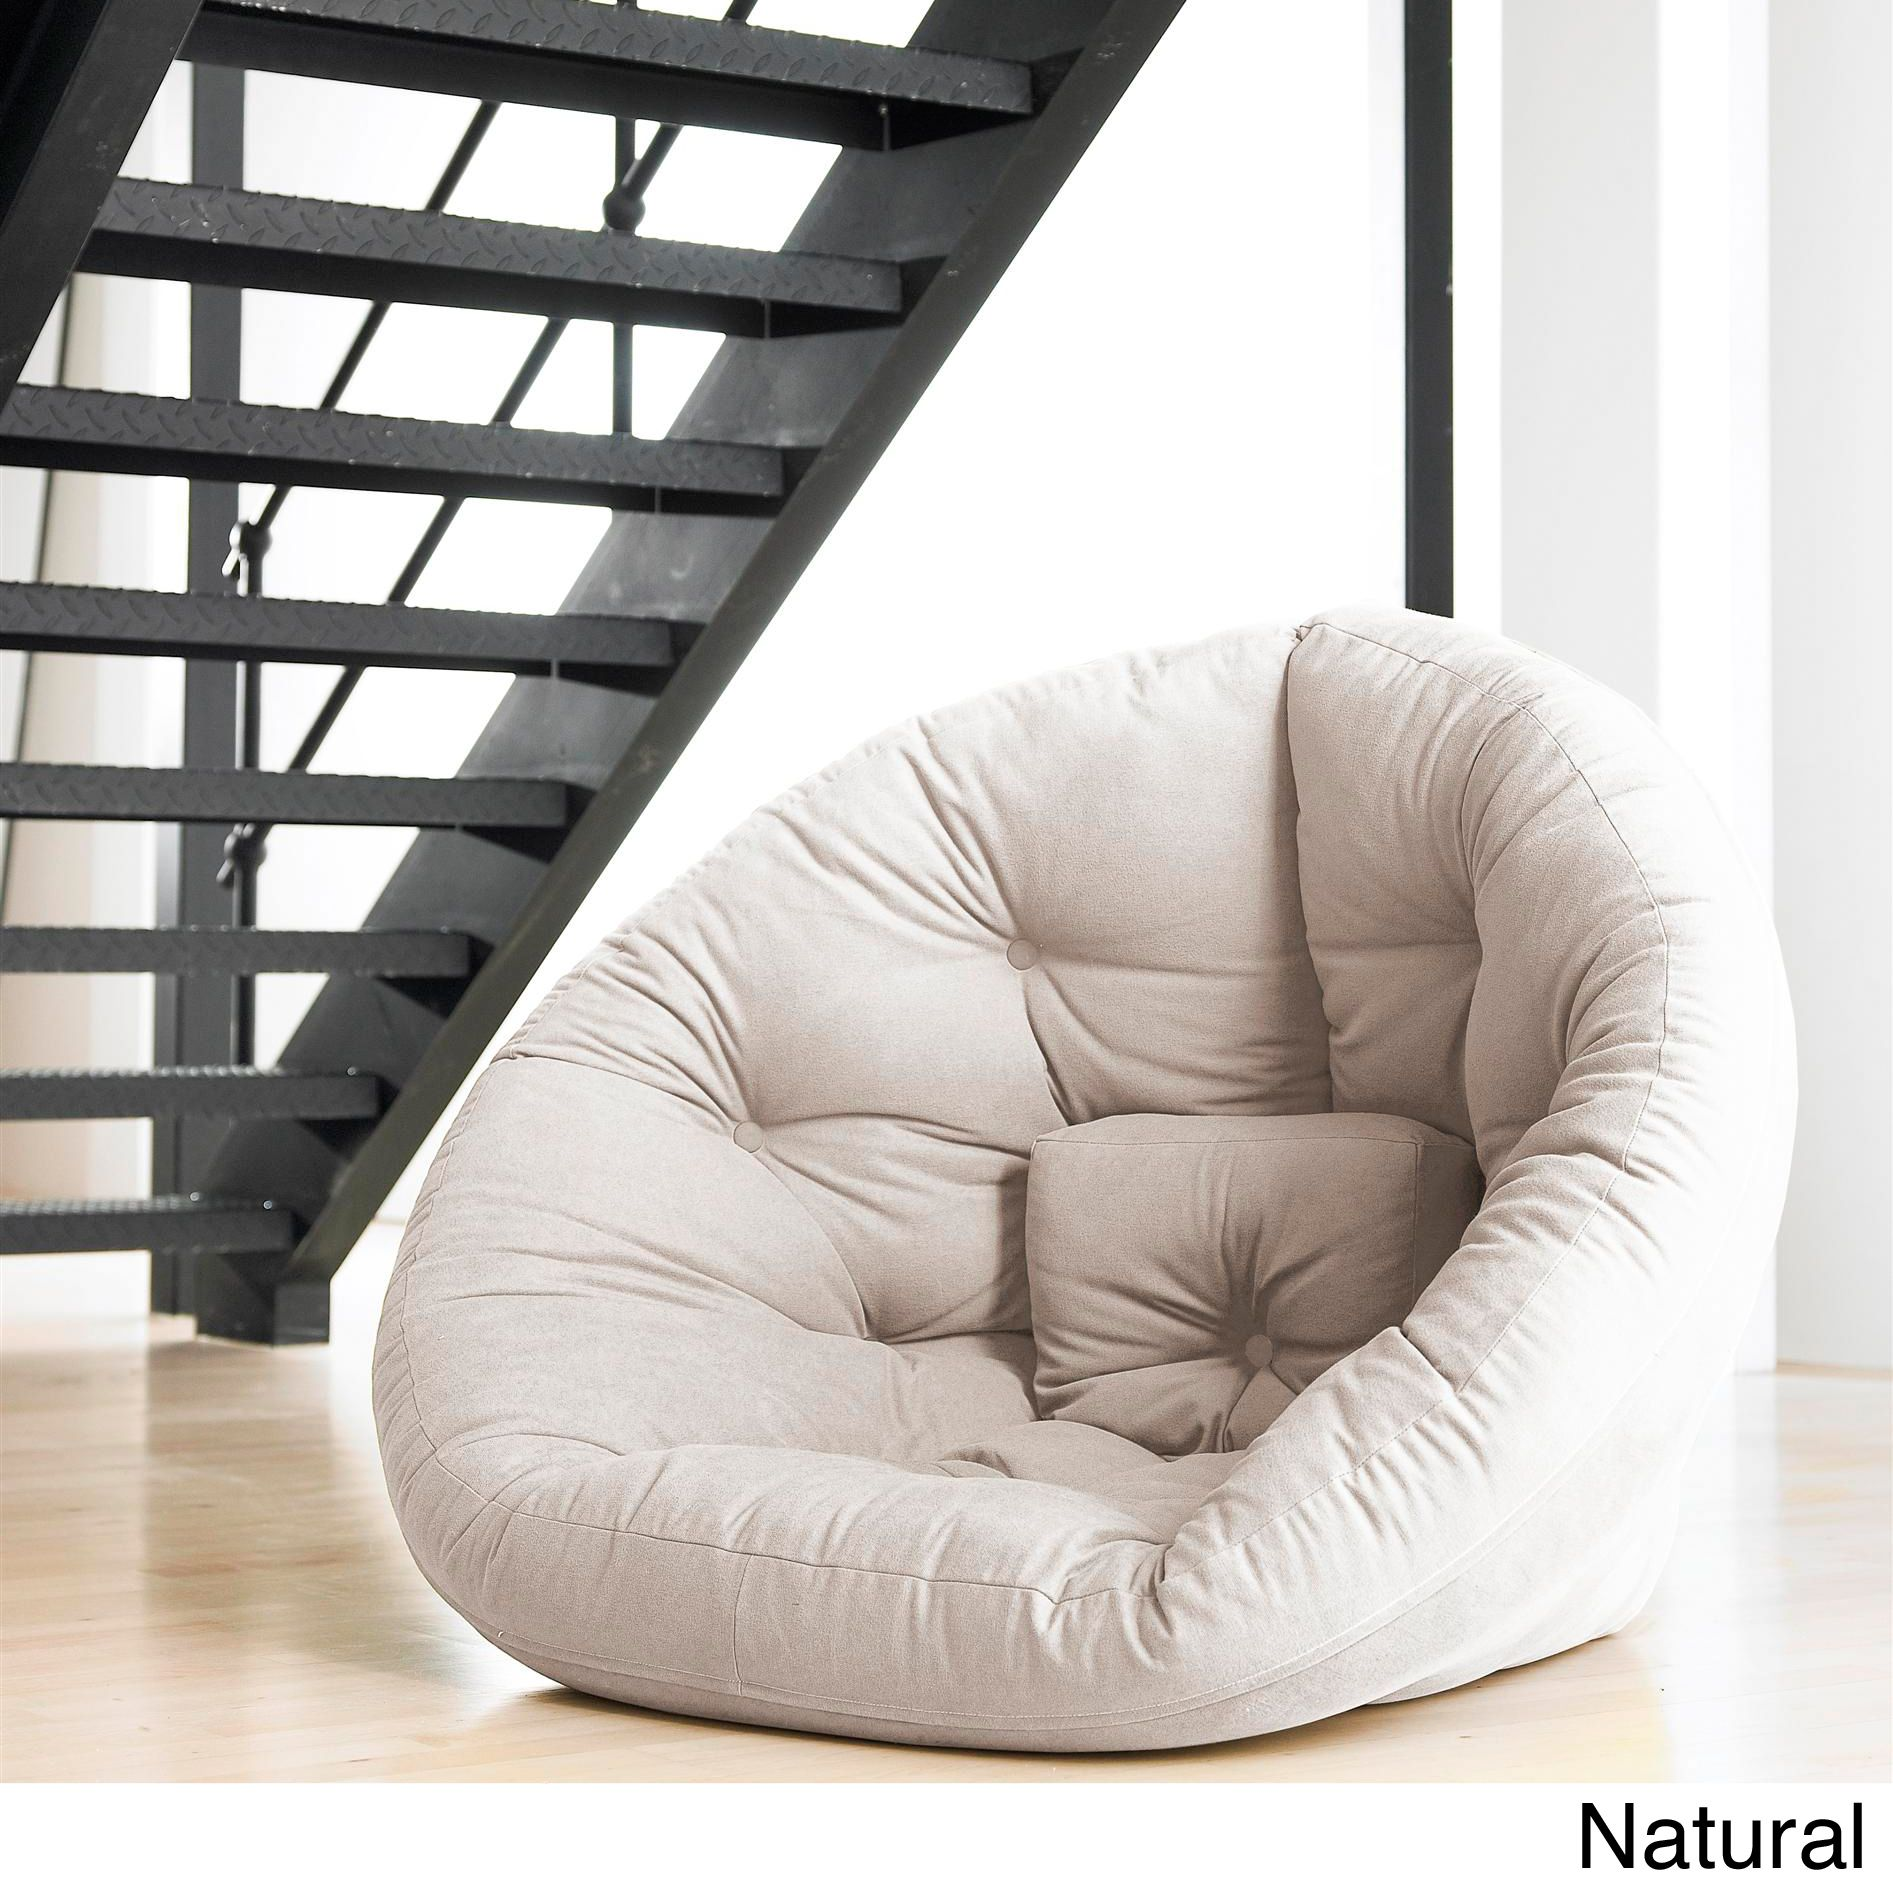 beds futon mattress sofa with single your for of inspirational great sydney bed chair chairs unique